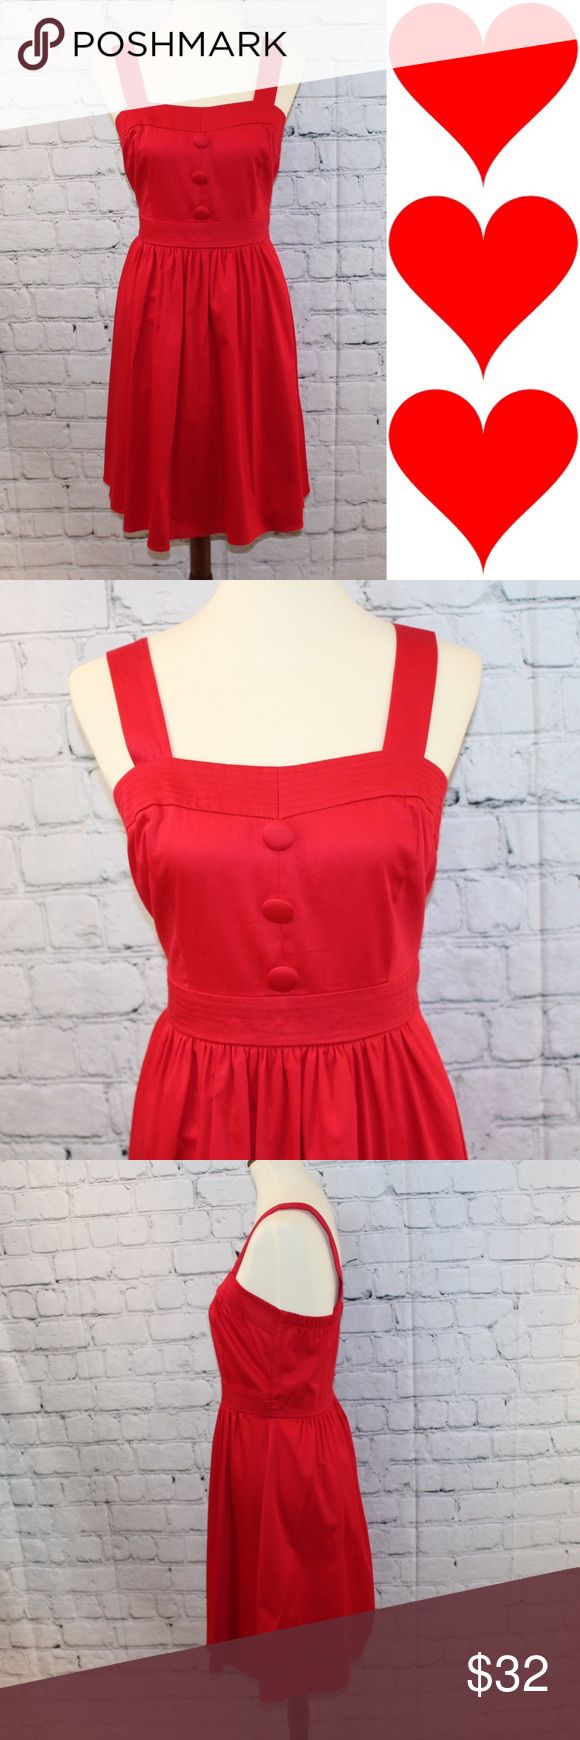 B. Smart red pleated A-line sleeveless dress Perfect for Valentine's Day! Excellent condition B. Smart Dresses